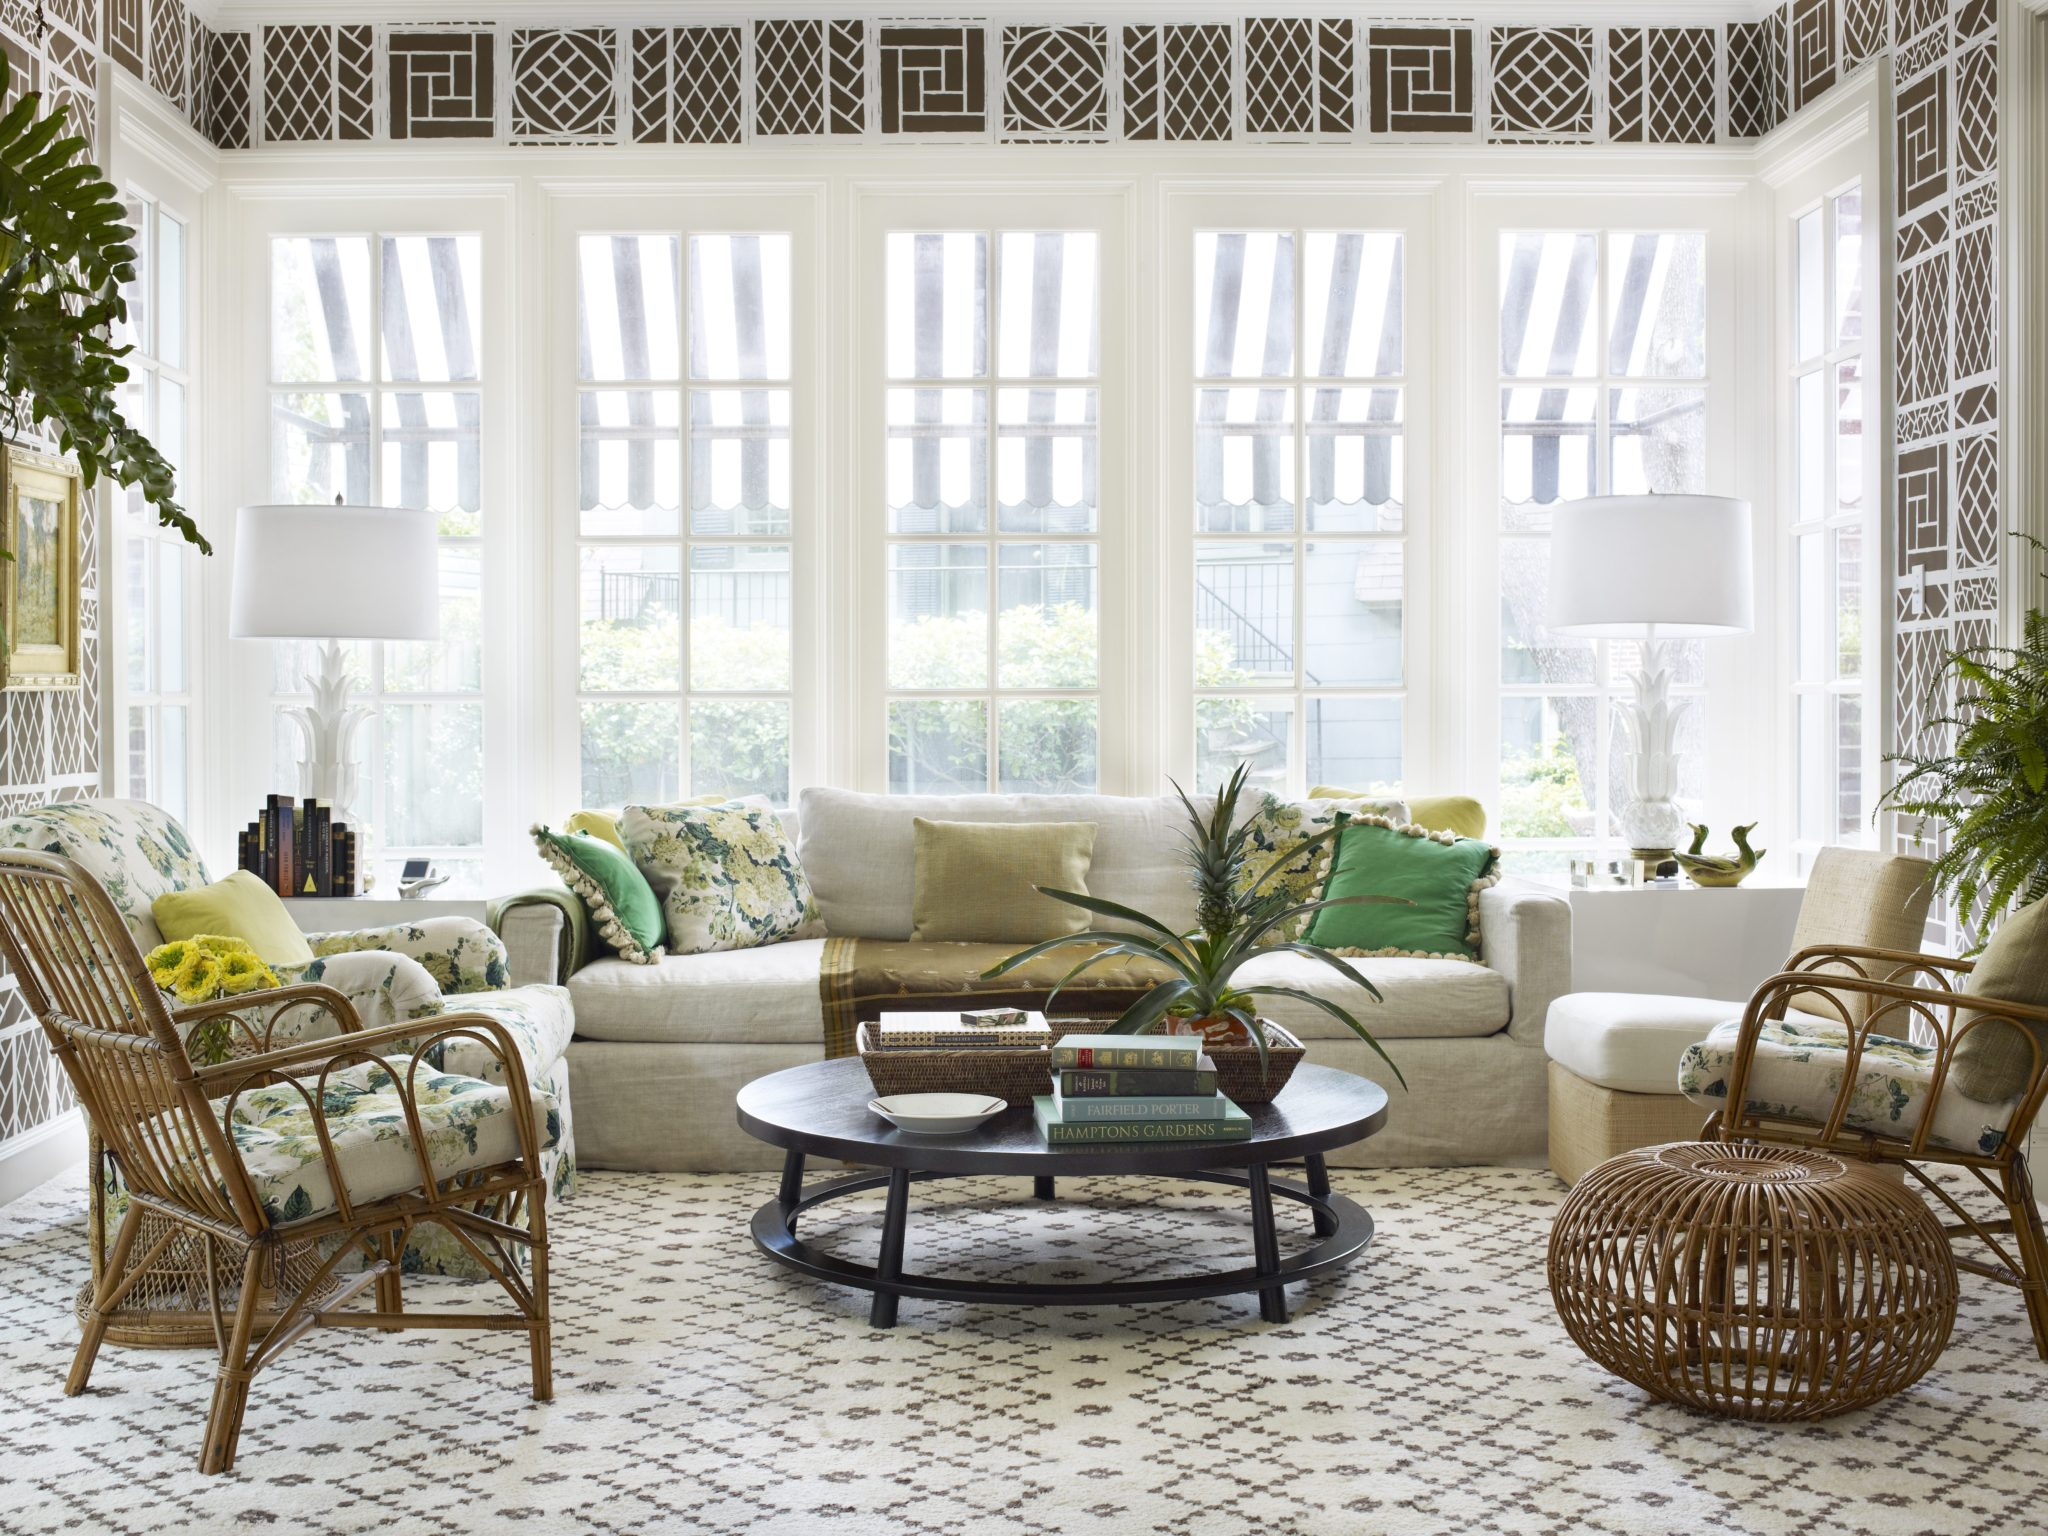 The sunroom of a 1930s Georgian house in Dallas is shaded by retractable black-and-white-striped awnings. The designer's favorite Lyford Trellis wallpaper was rescaled and recolored for both the sunroom and the adjacent dining room. The round coffee table by Robsjohn-Gibbings is surrounded by an artful mix, including a Billy Baldwin slipper chair, antique wicker chairs, a Restoration Hardware sofa, and a custom Bridgewater chair from Luther Quintana Upholstery. The end tables are simple painted plywood boxes.